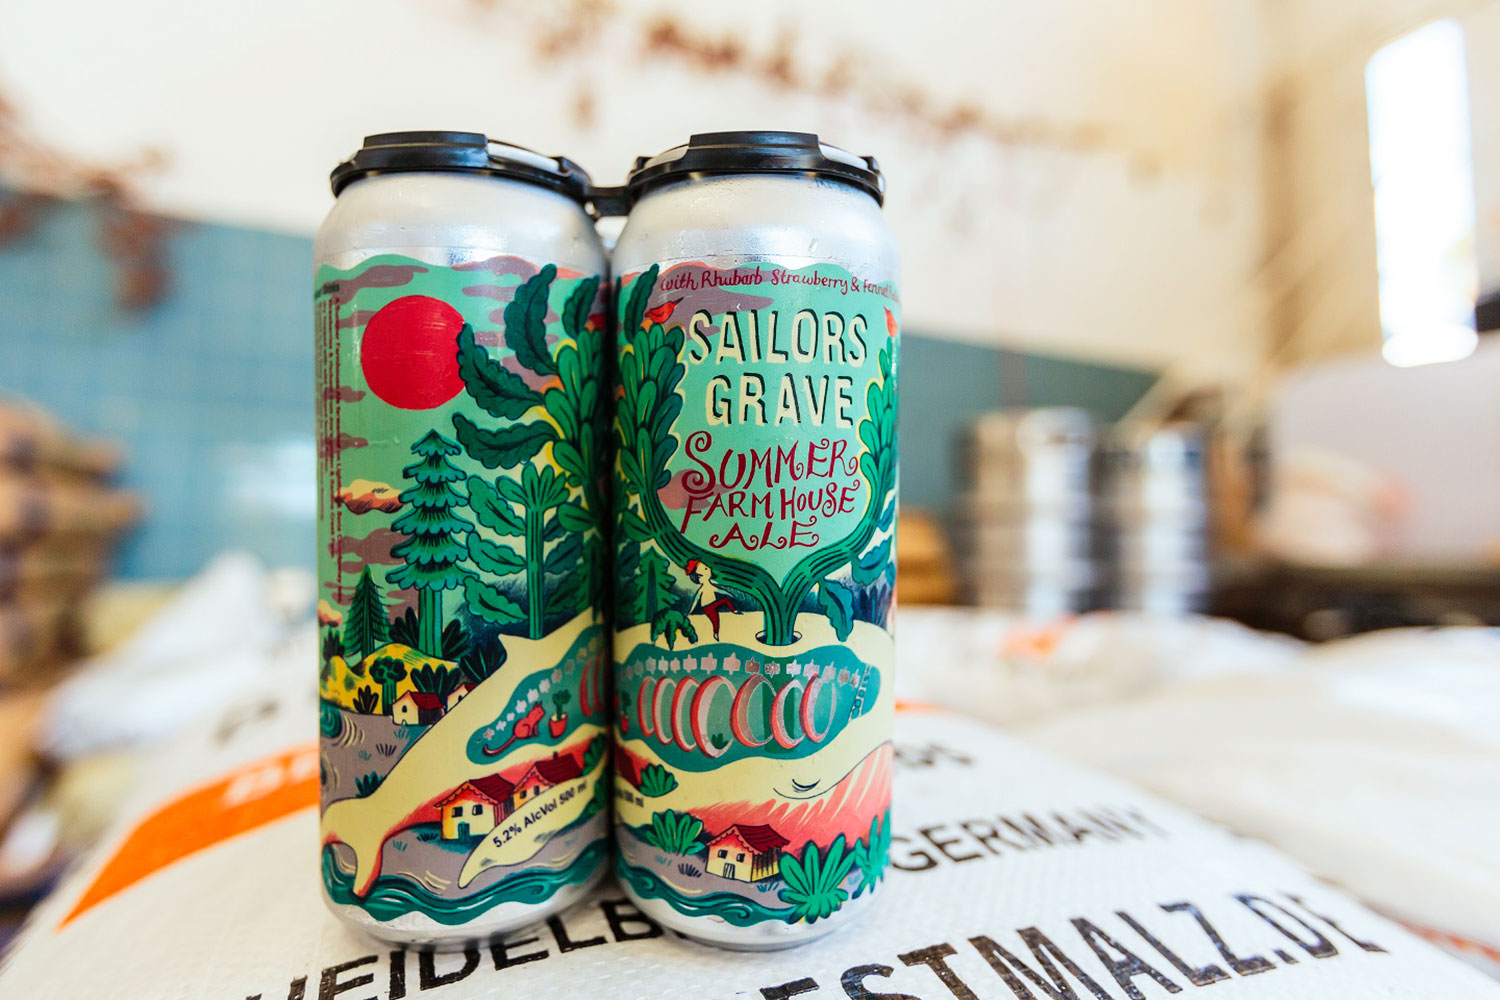 Sailor's Grave Brewing Summer Farmhouse Ale